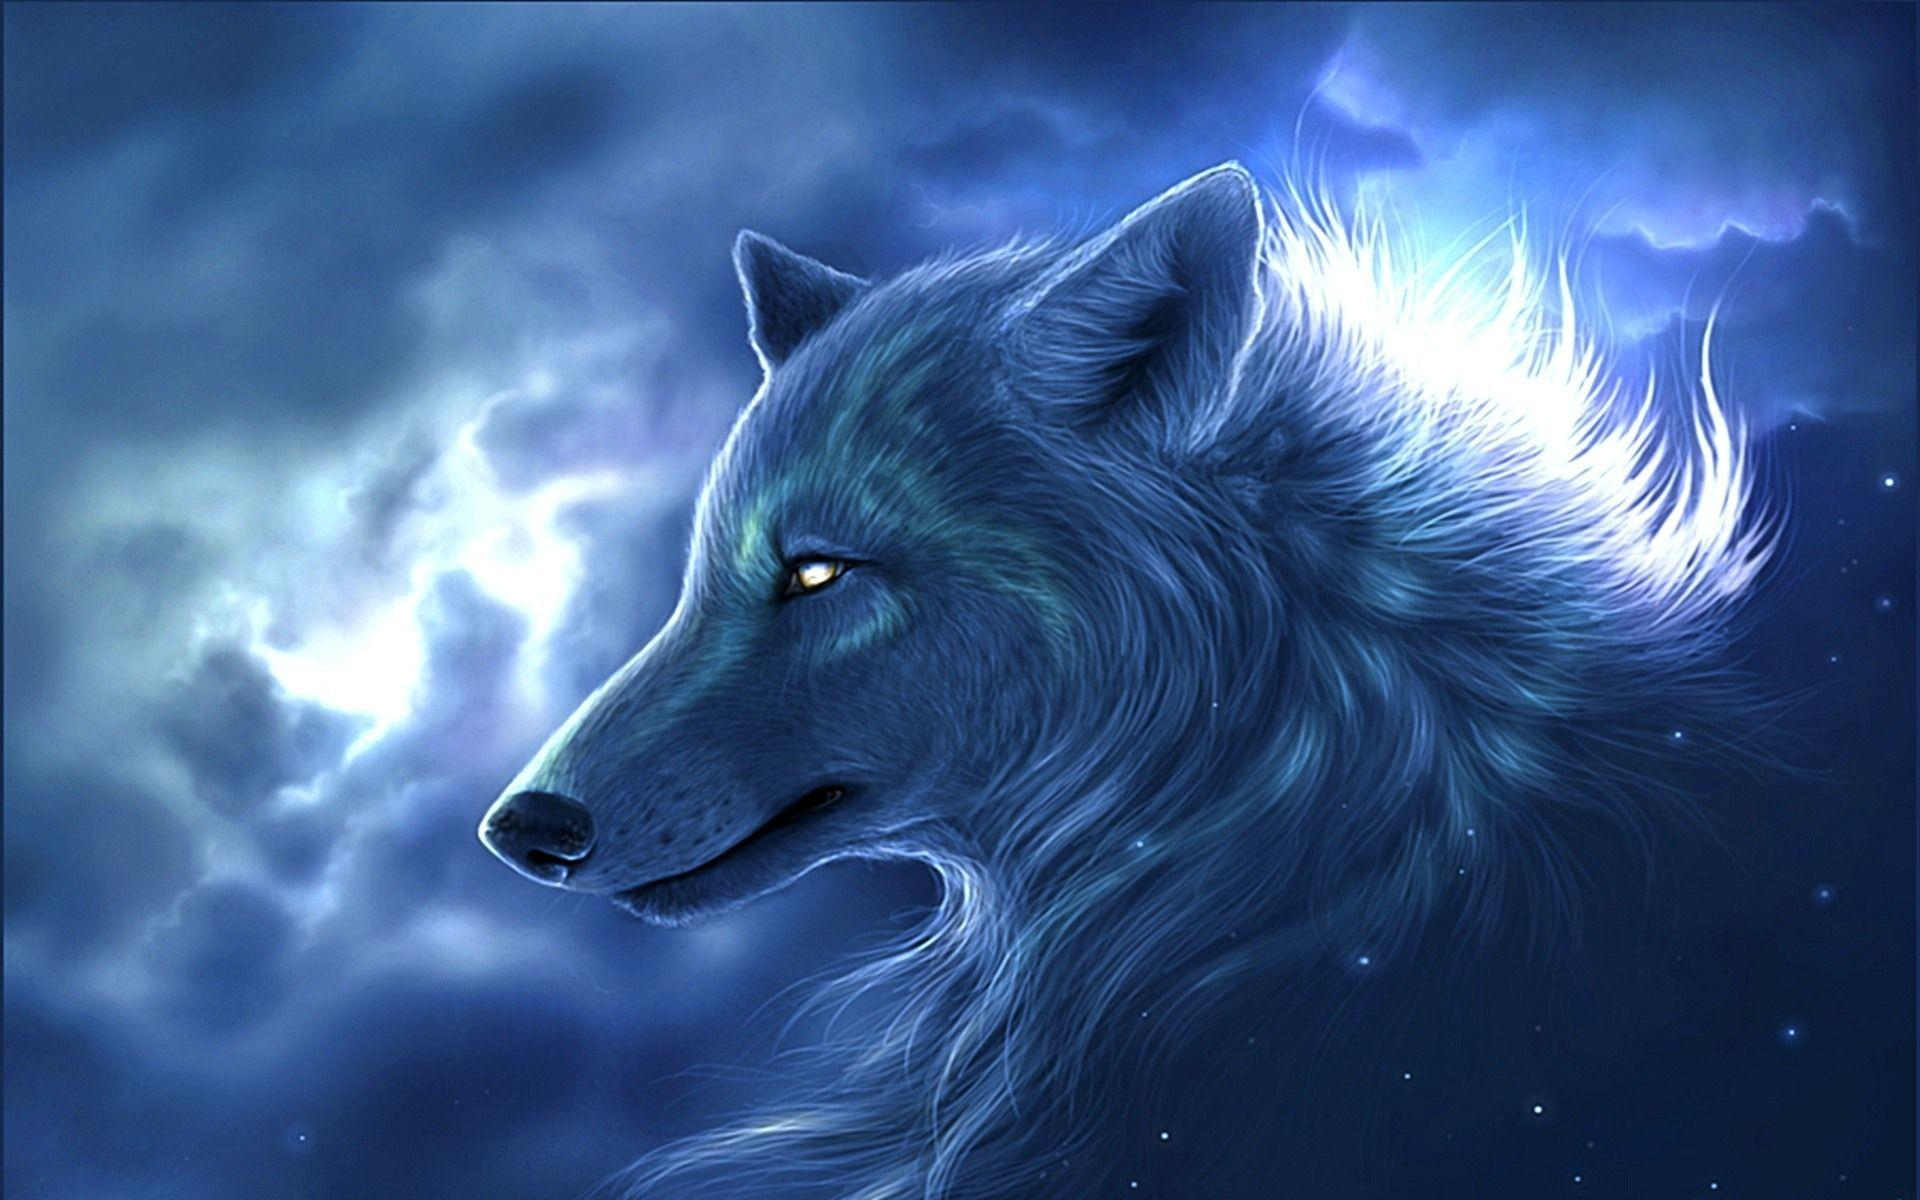 wolf wallpaper | wolf wallpaper - Part 2